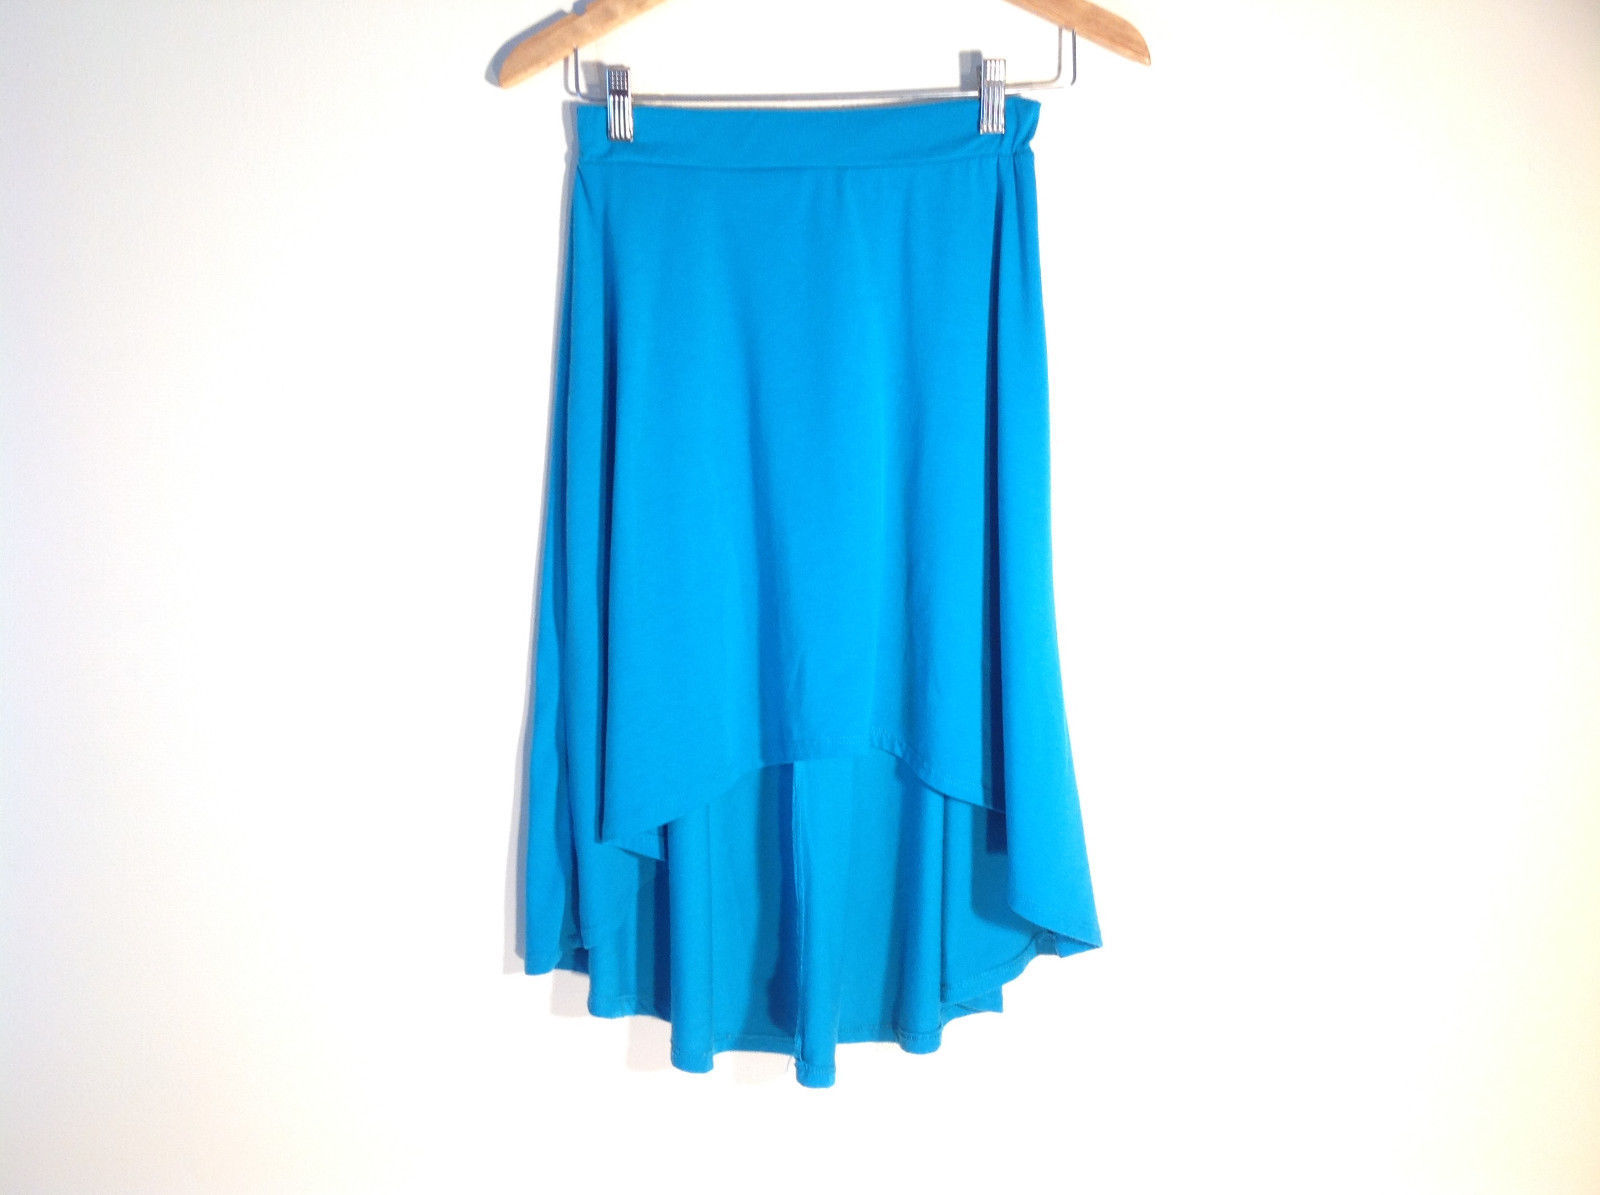 Womens Ambivalence Apparel Size S Teal Skirt Stretchy Great